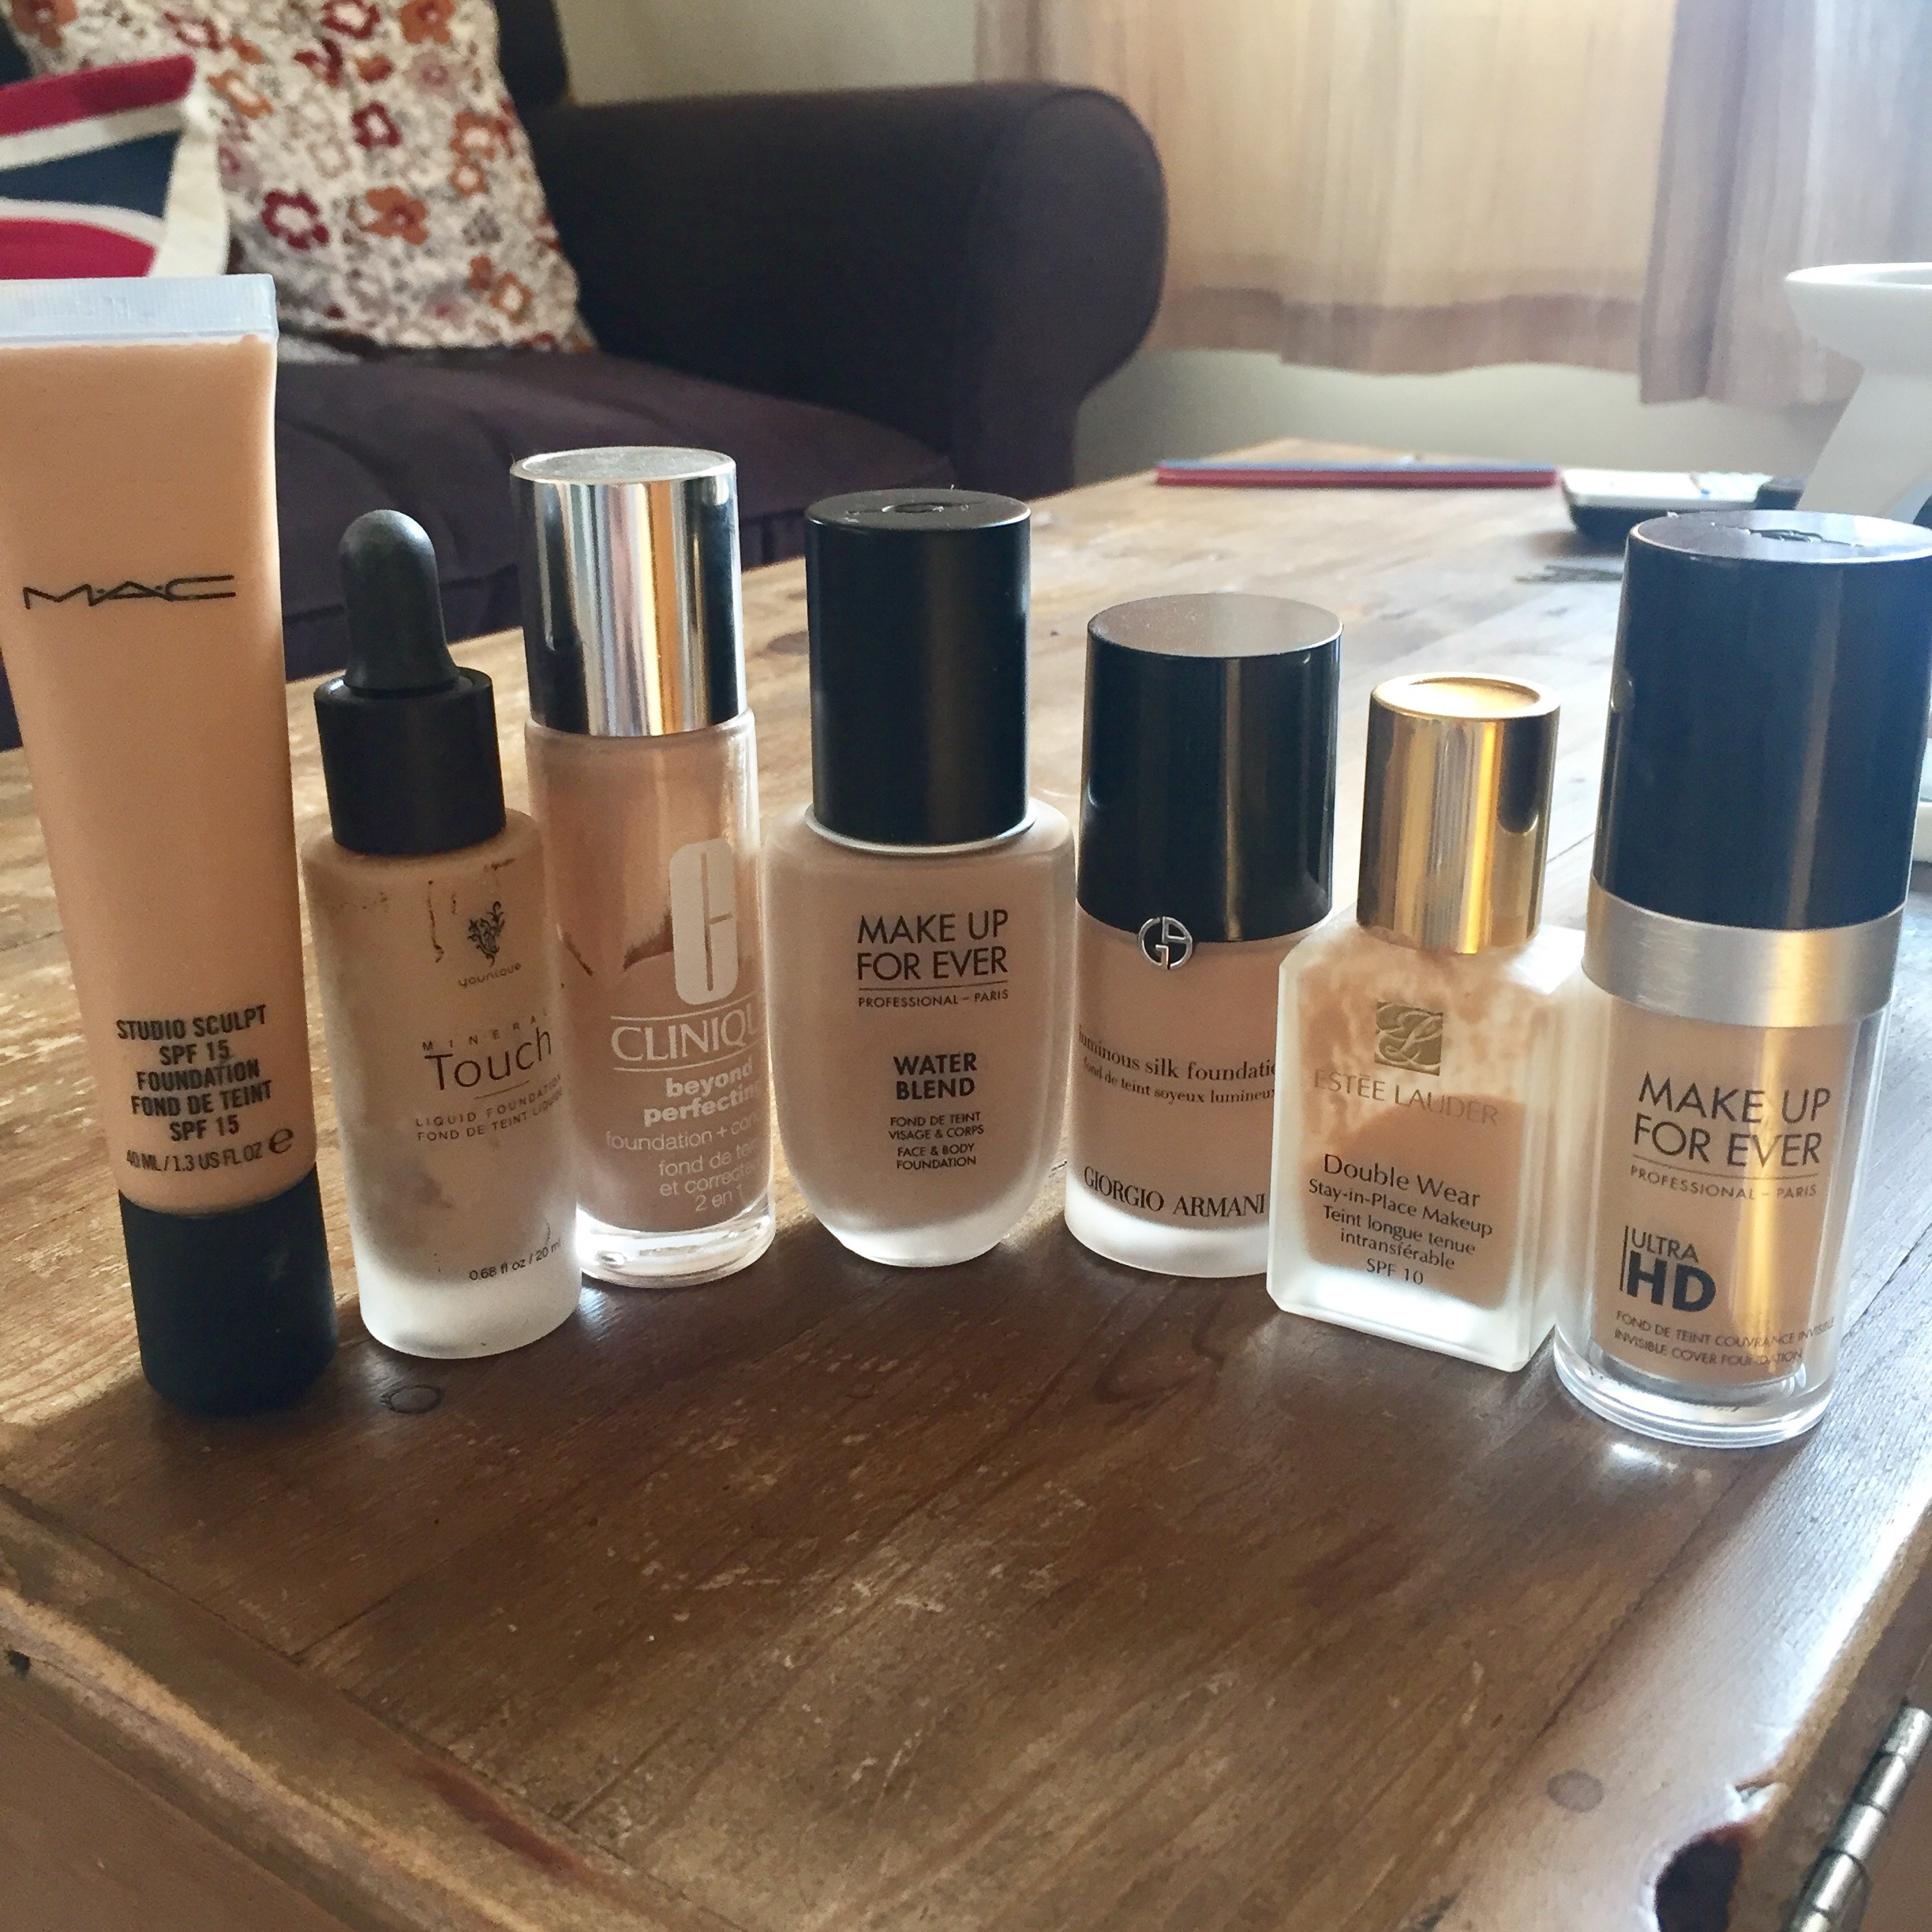 Foundation face off!